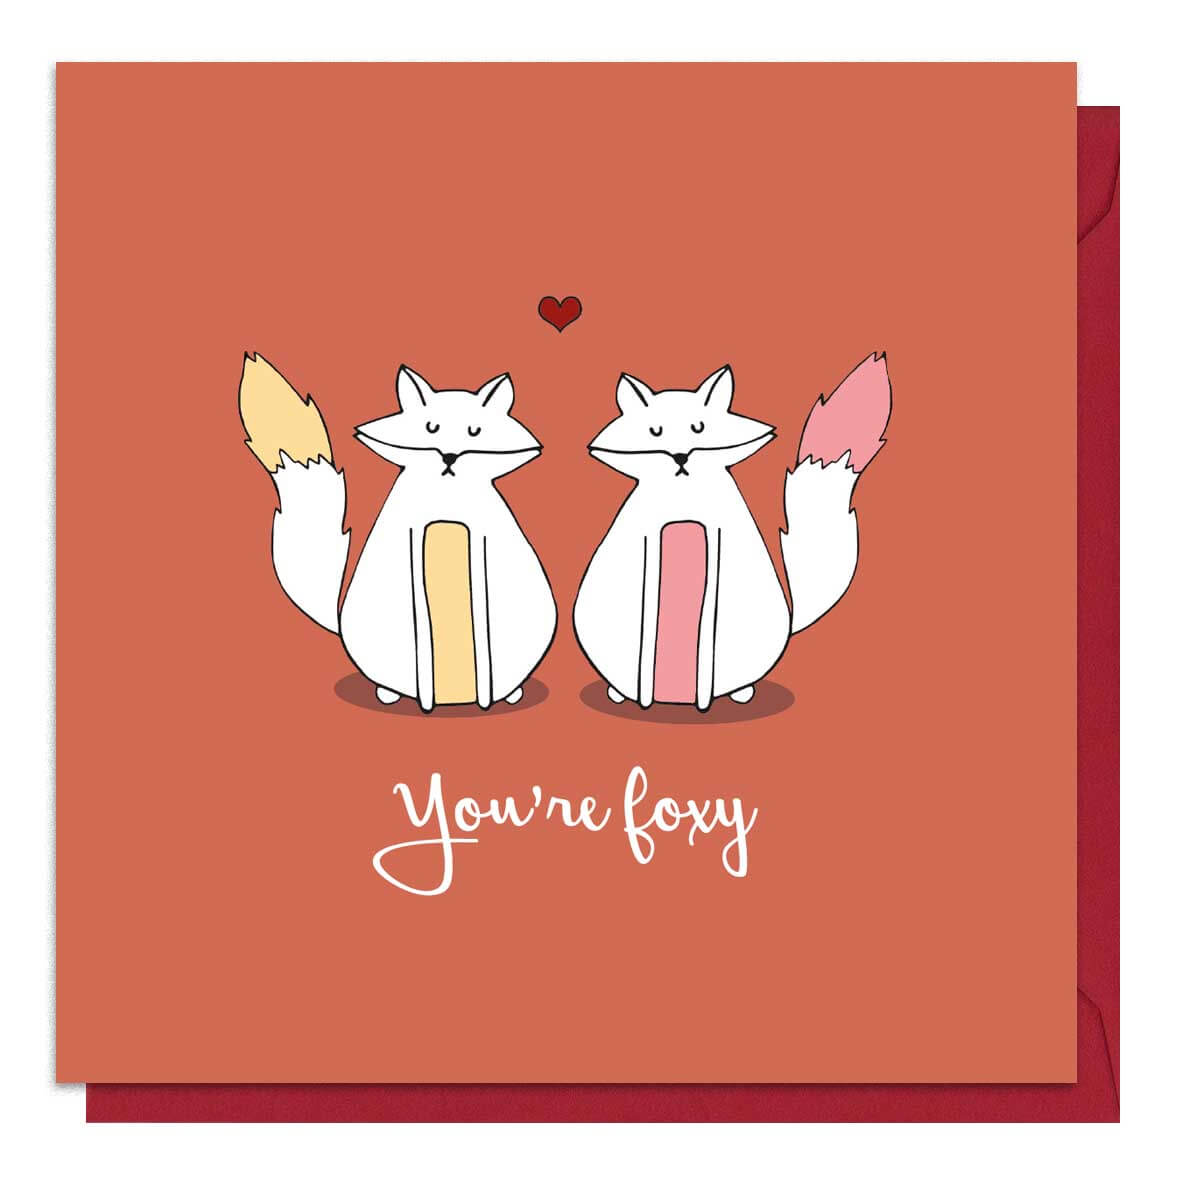 Red fox Valentine's Day card featuring an illustration of two foxes